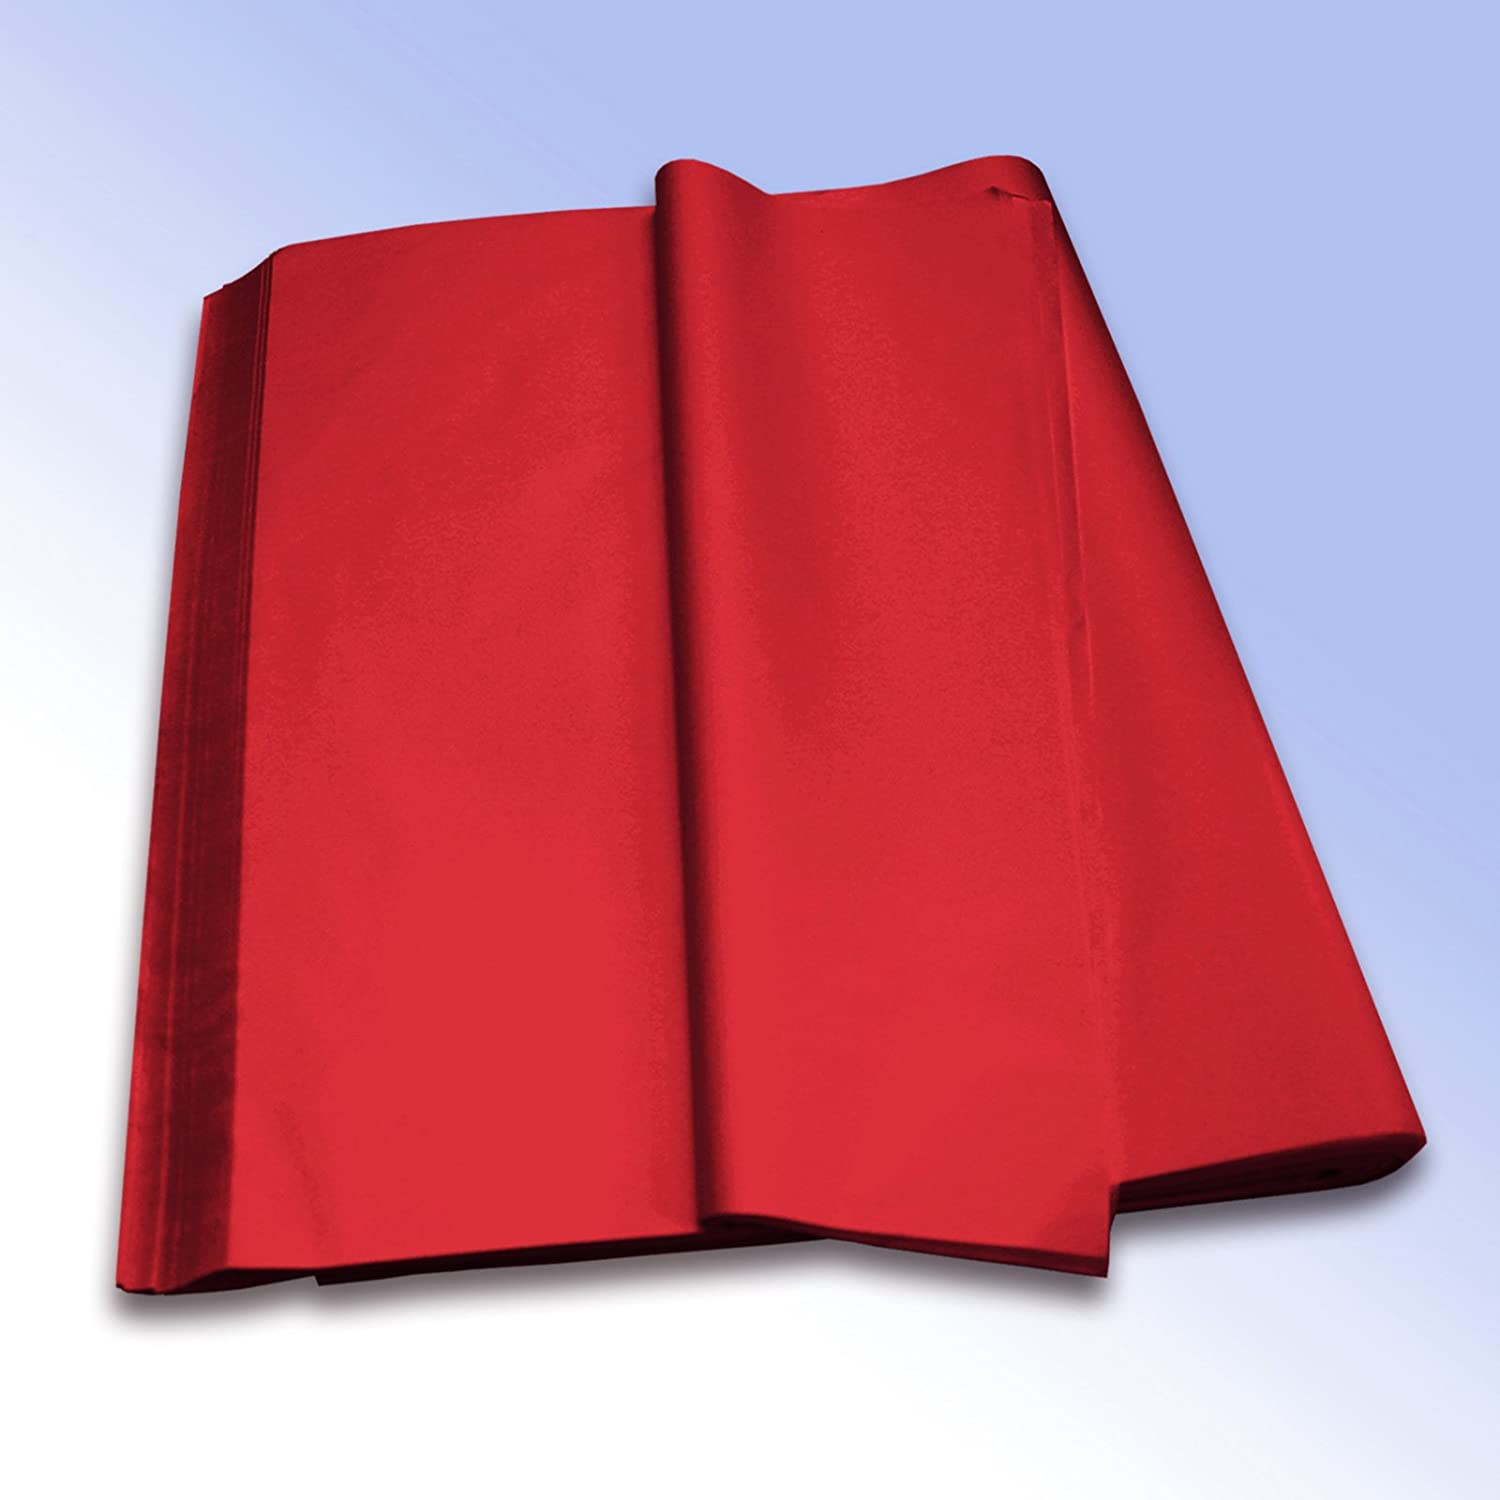 1 Ream (480 Sheets) of Red High Quality Pure MG Tissue Paper (Acid Free) 500mm x 750mm 20x30